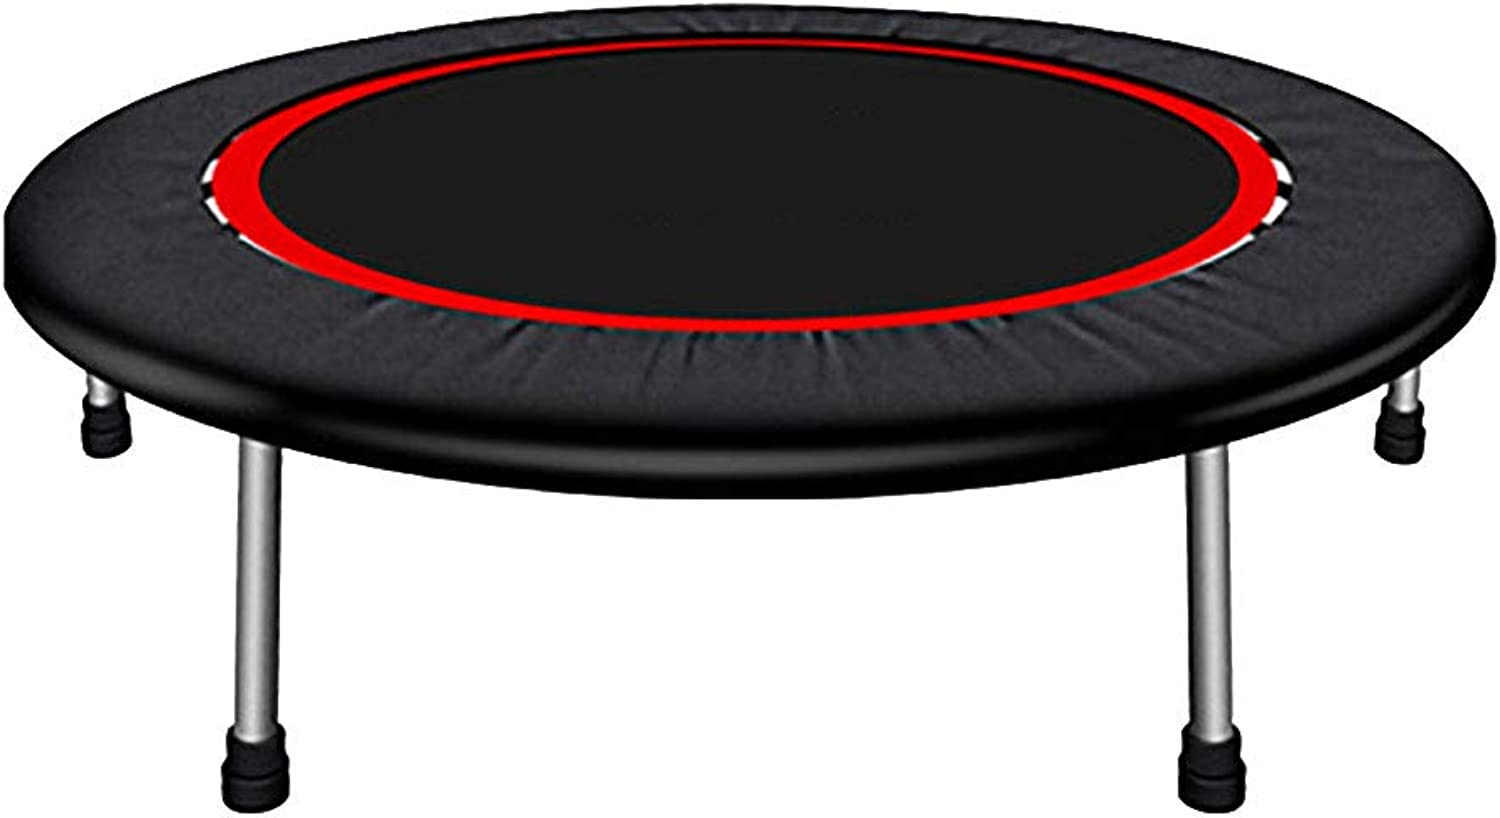 XinYing-BBC Mini Trampolines For Adults - Fitness, Workout, for Adults and Kids, with Bungee Rope System for Home Cardio Workouts 40  48  54